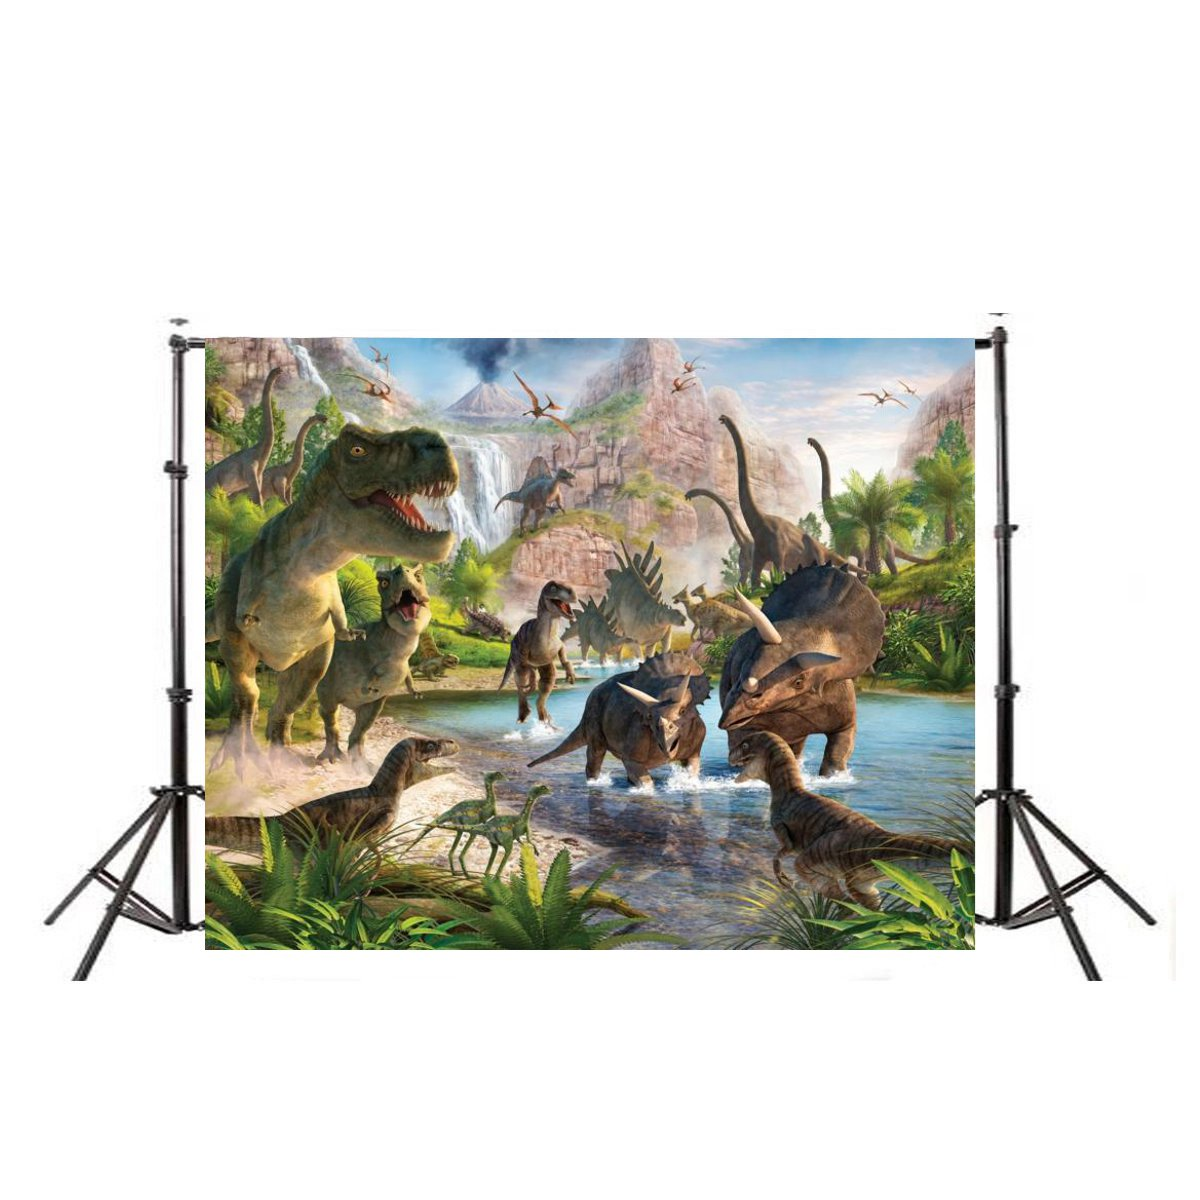 2018 New Arrival Dinosaur Vinyl Photography Backgrounds Studio Props Backdrops Decoration 7X5FT custom10ftx20ft vinyl studio photography digital props backgrounds e 3742 maple leaf backdrops cloth